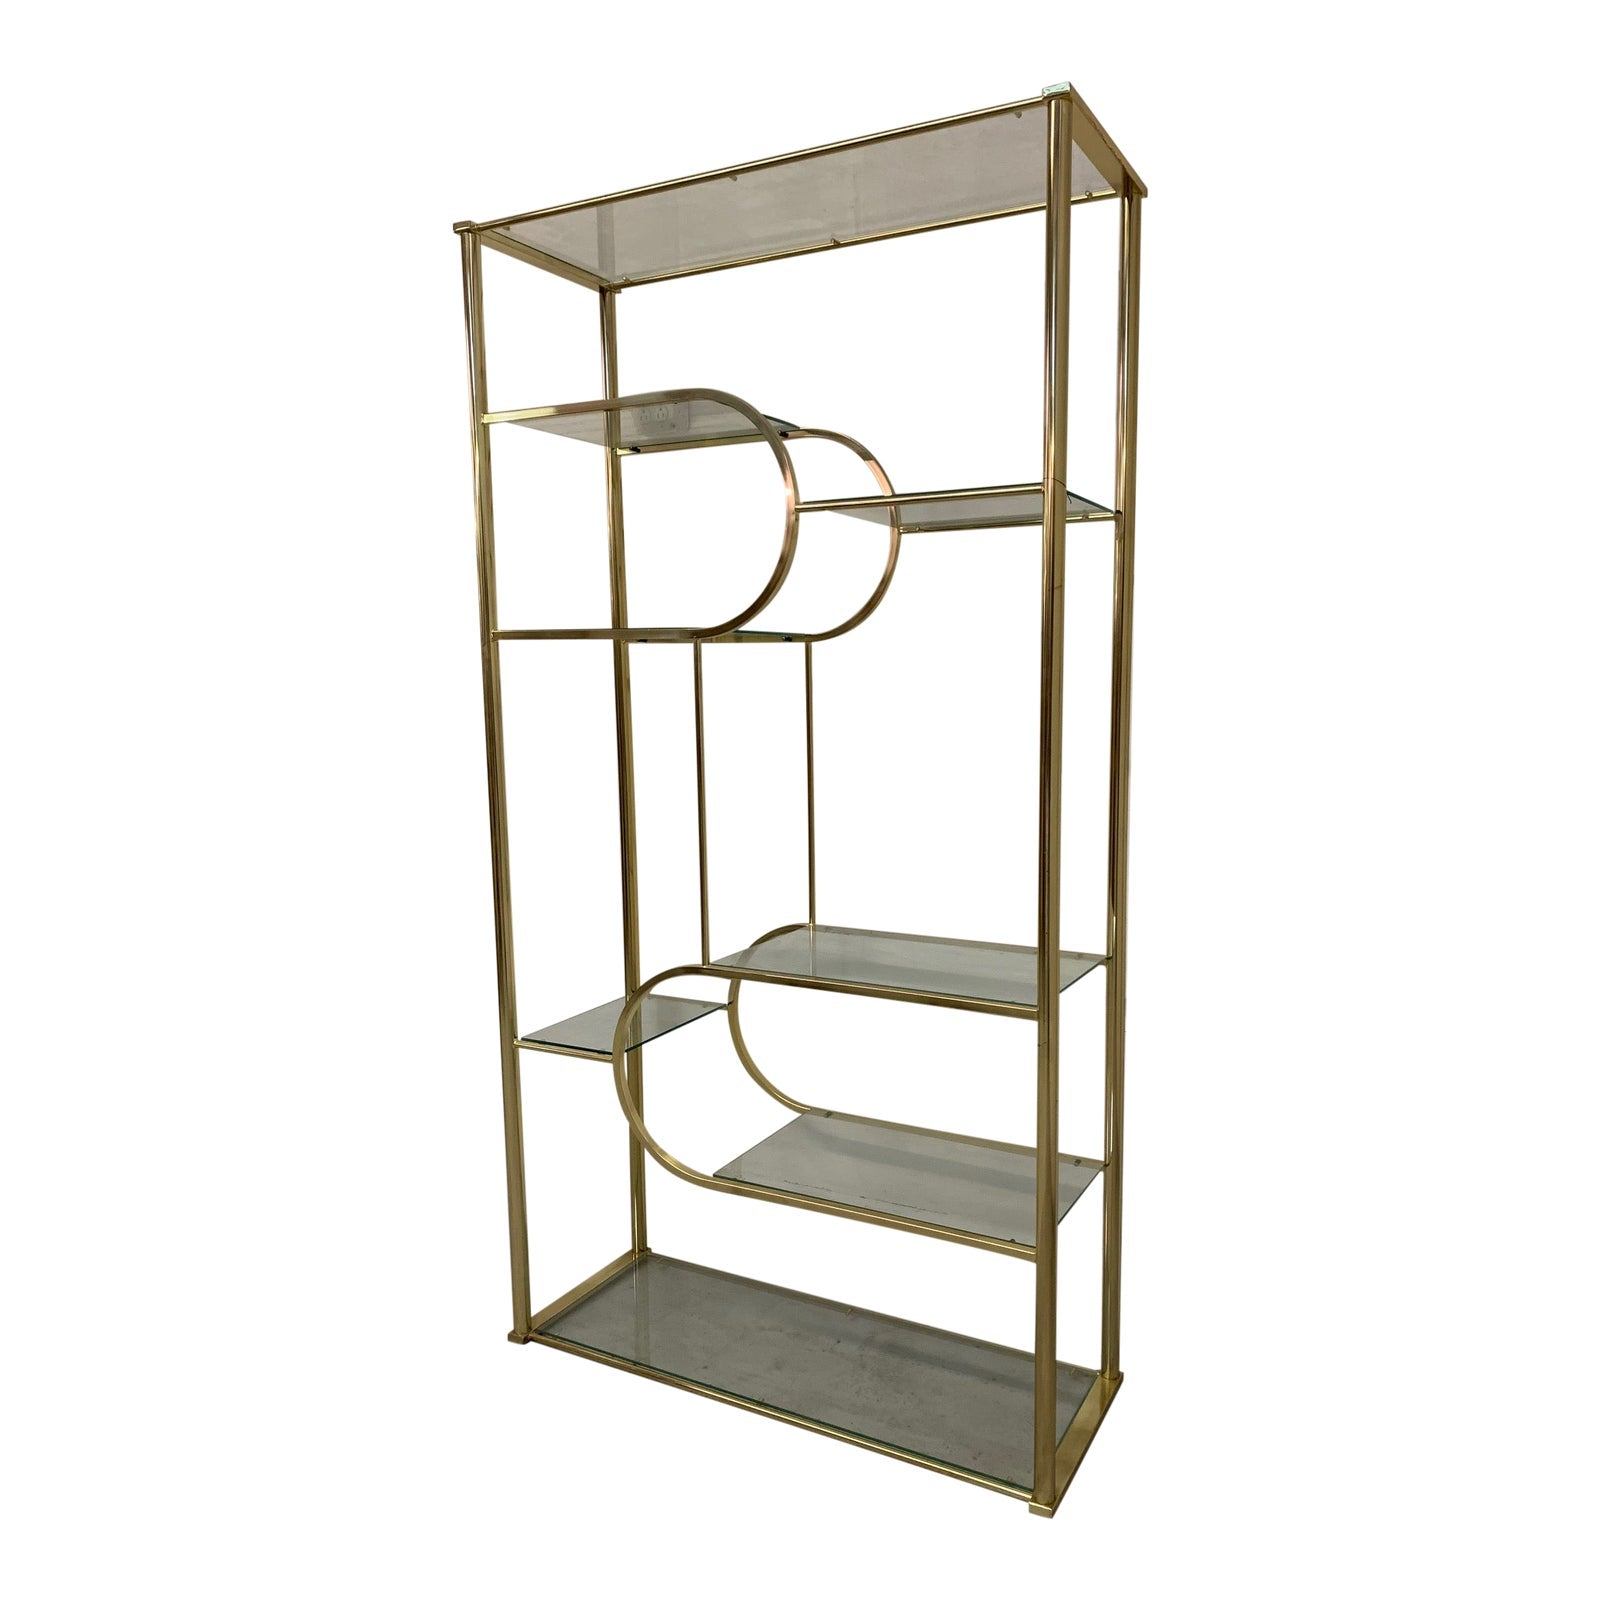 Brass and Glass Etagere by Design Institute of America in the Style of Milo Baughman